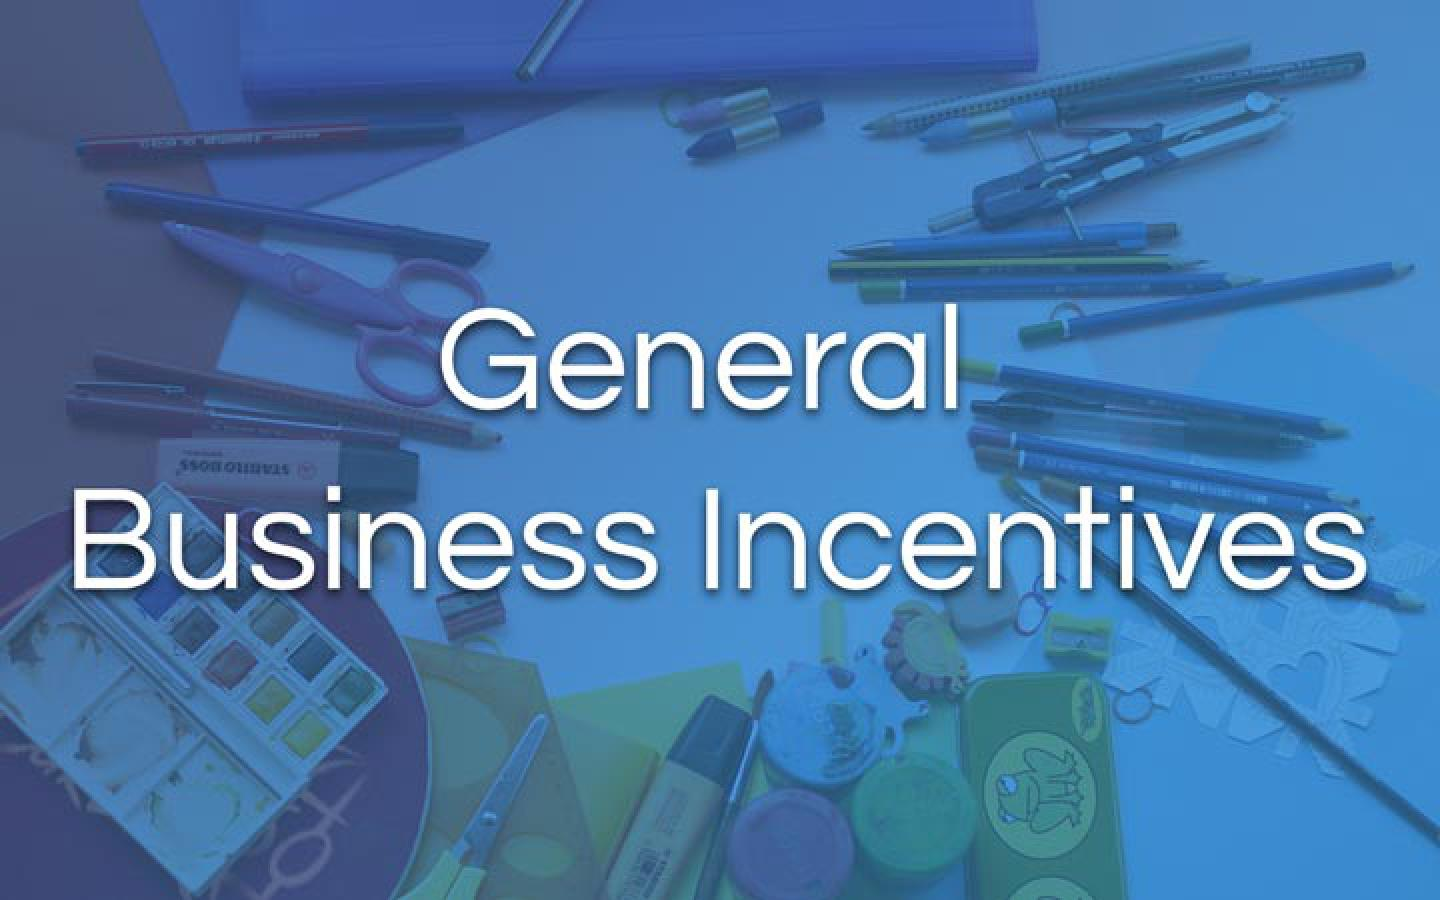 General Business Incentives